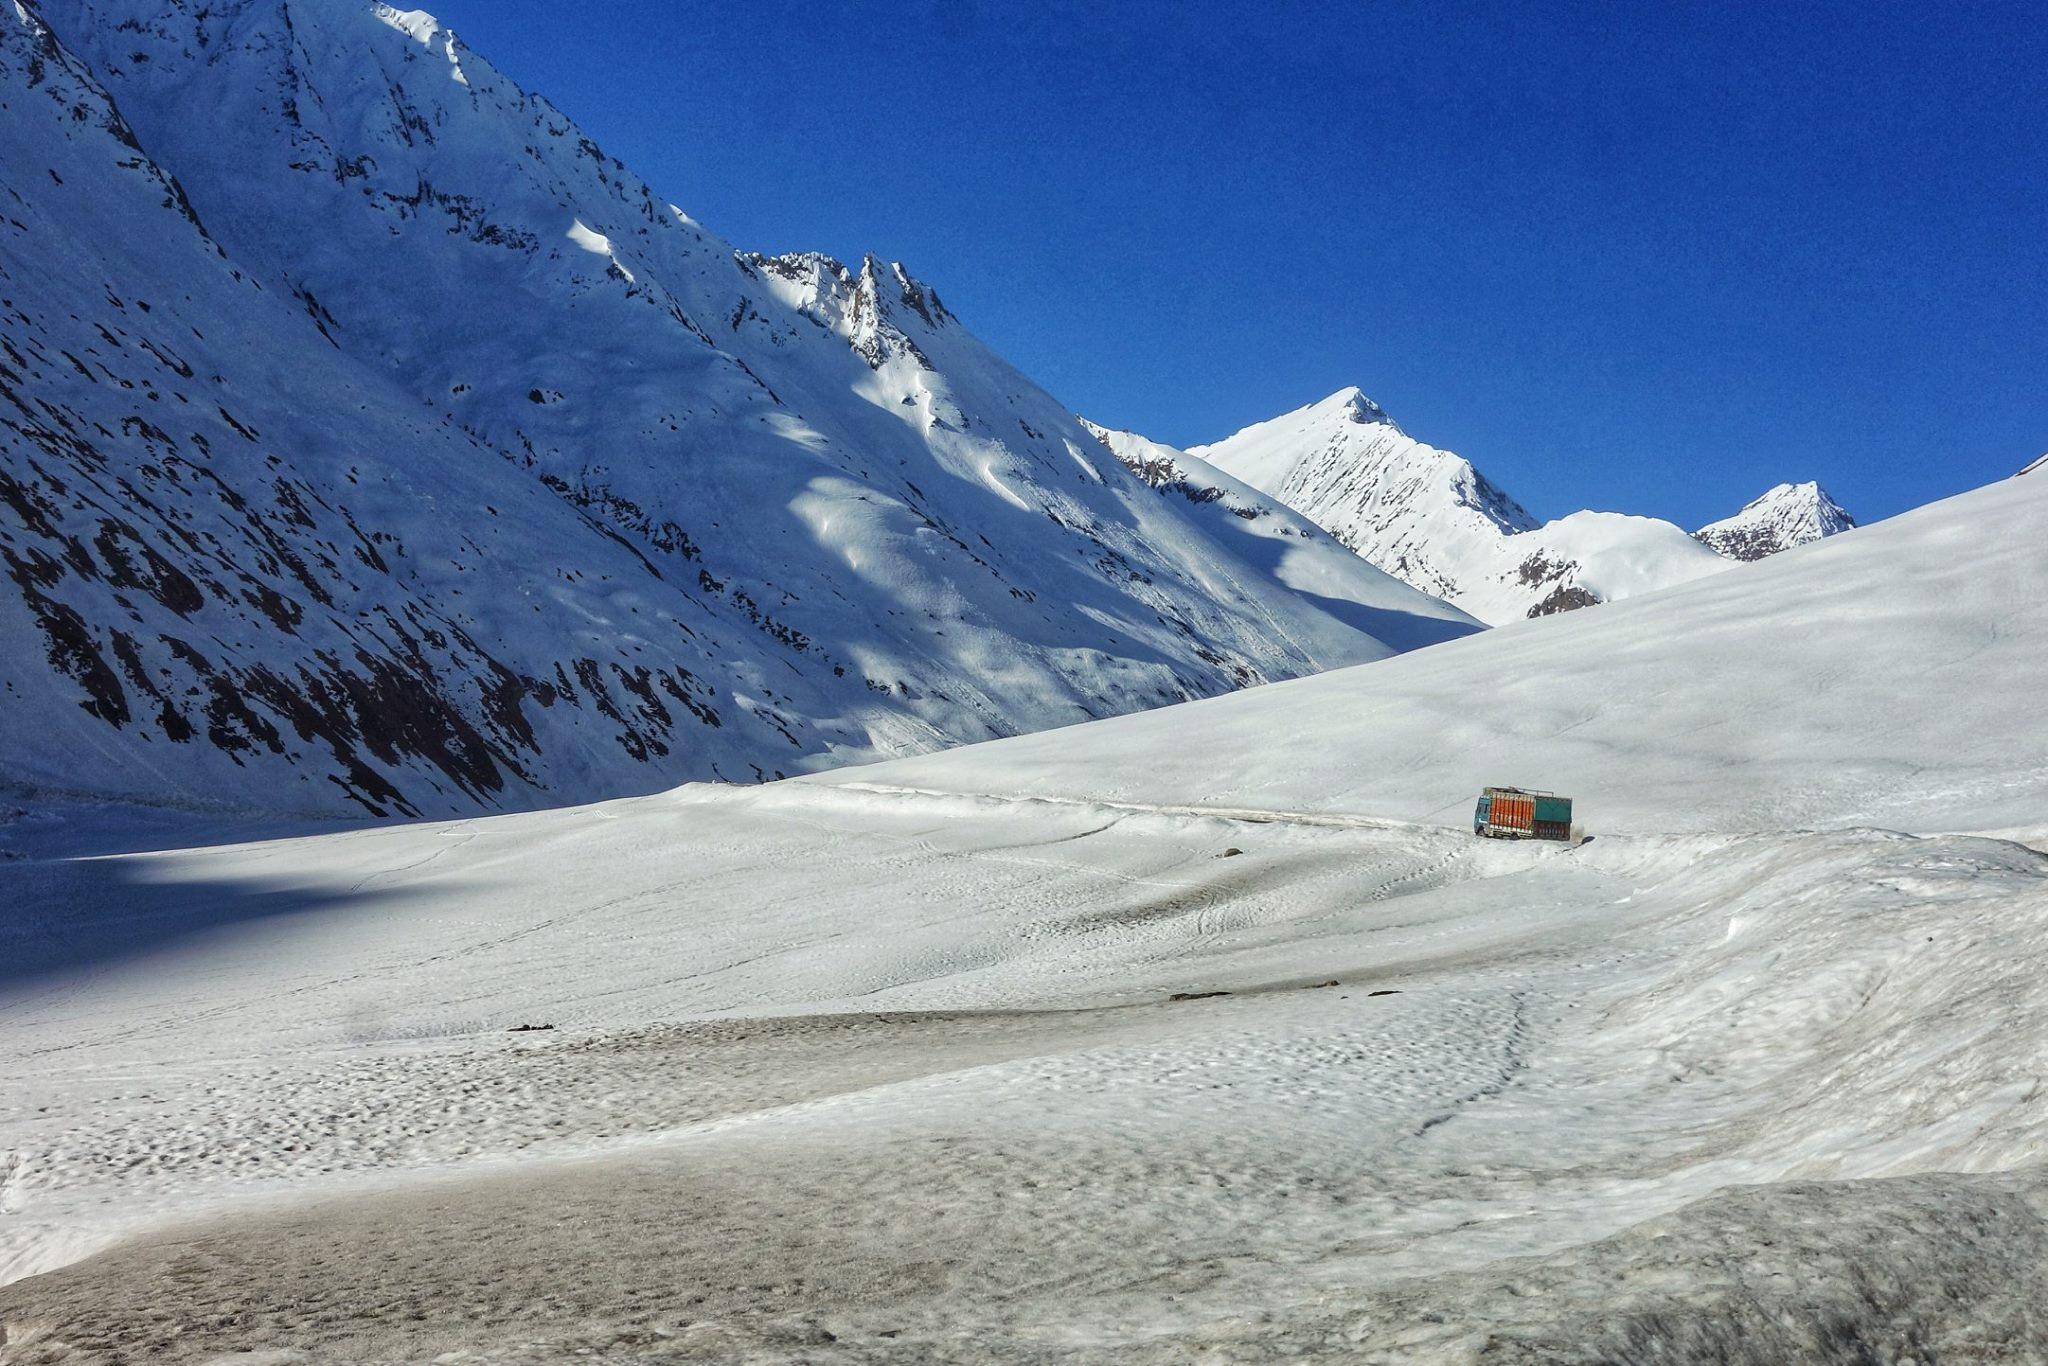 A Truck astride the Great Himalayan Range as it approaches Zoji La.